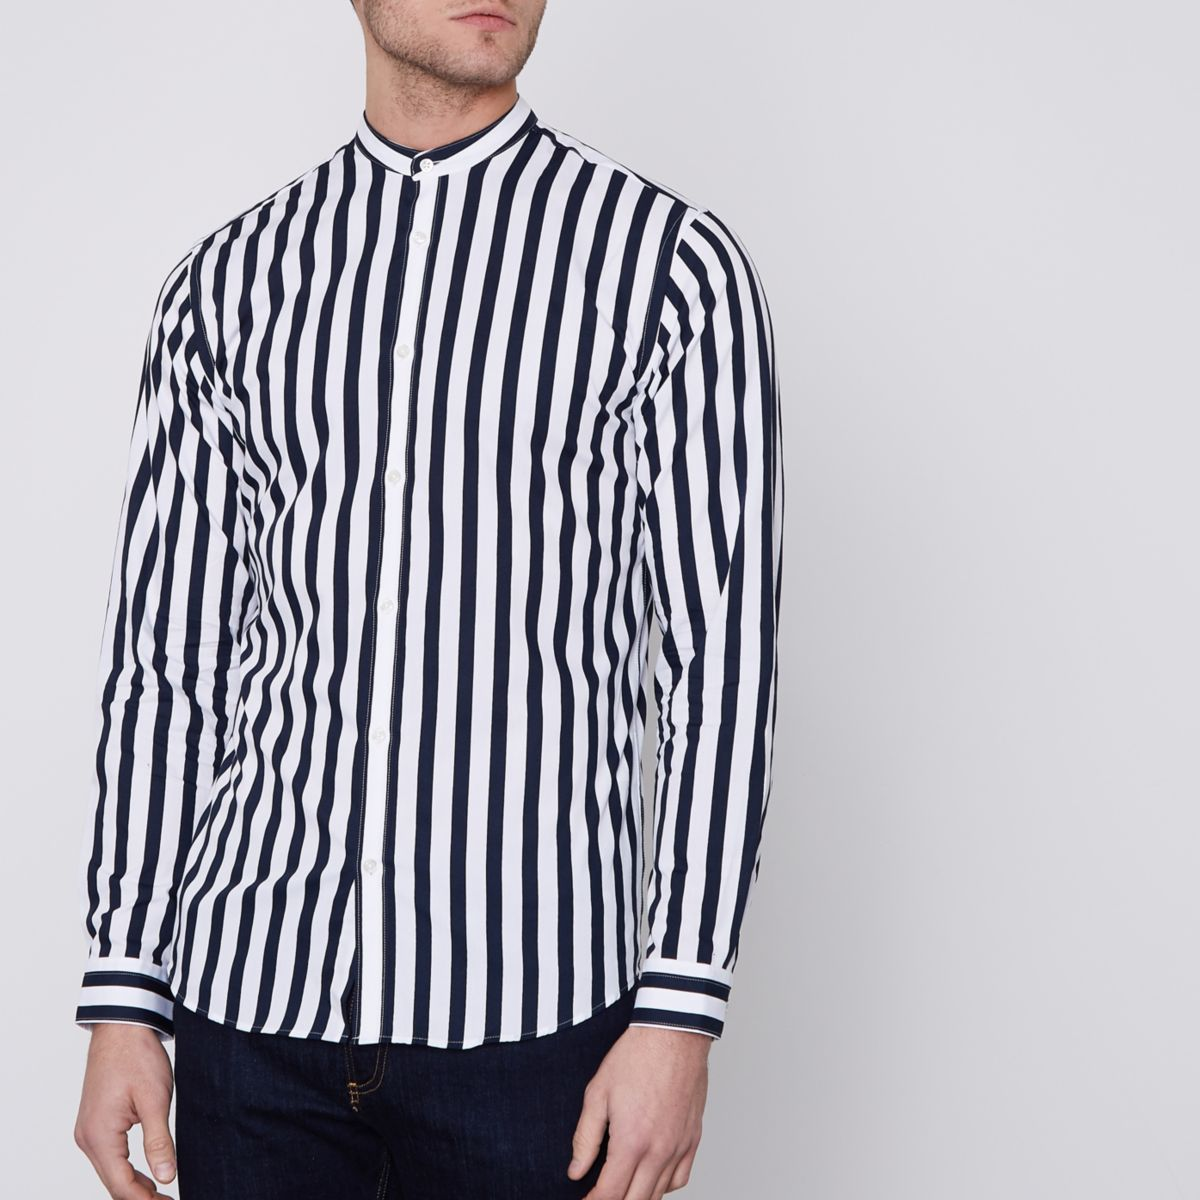 Navy Jack & Jones Premium stripe shirt